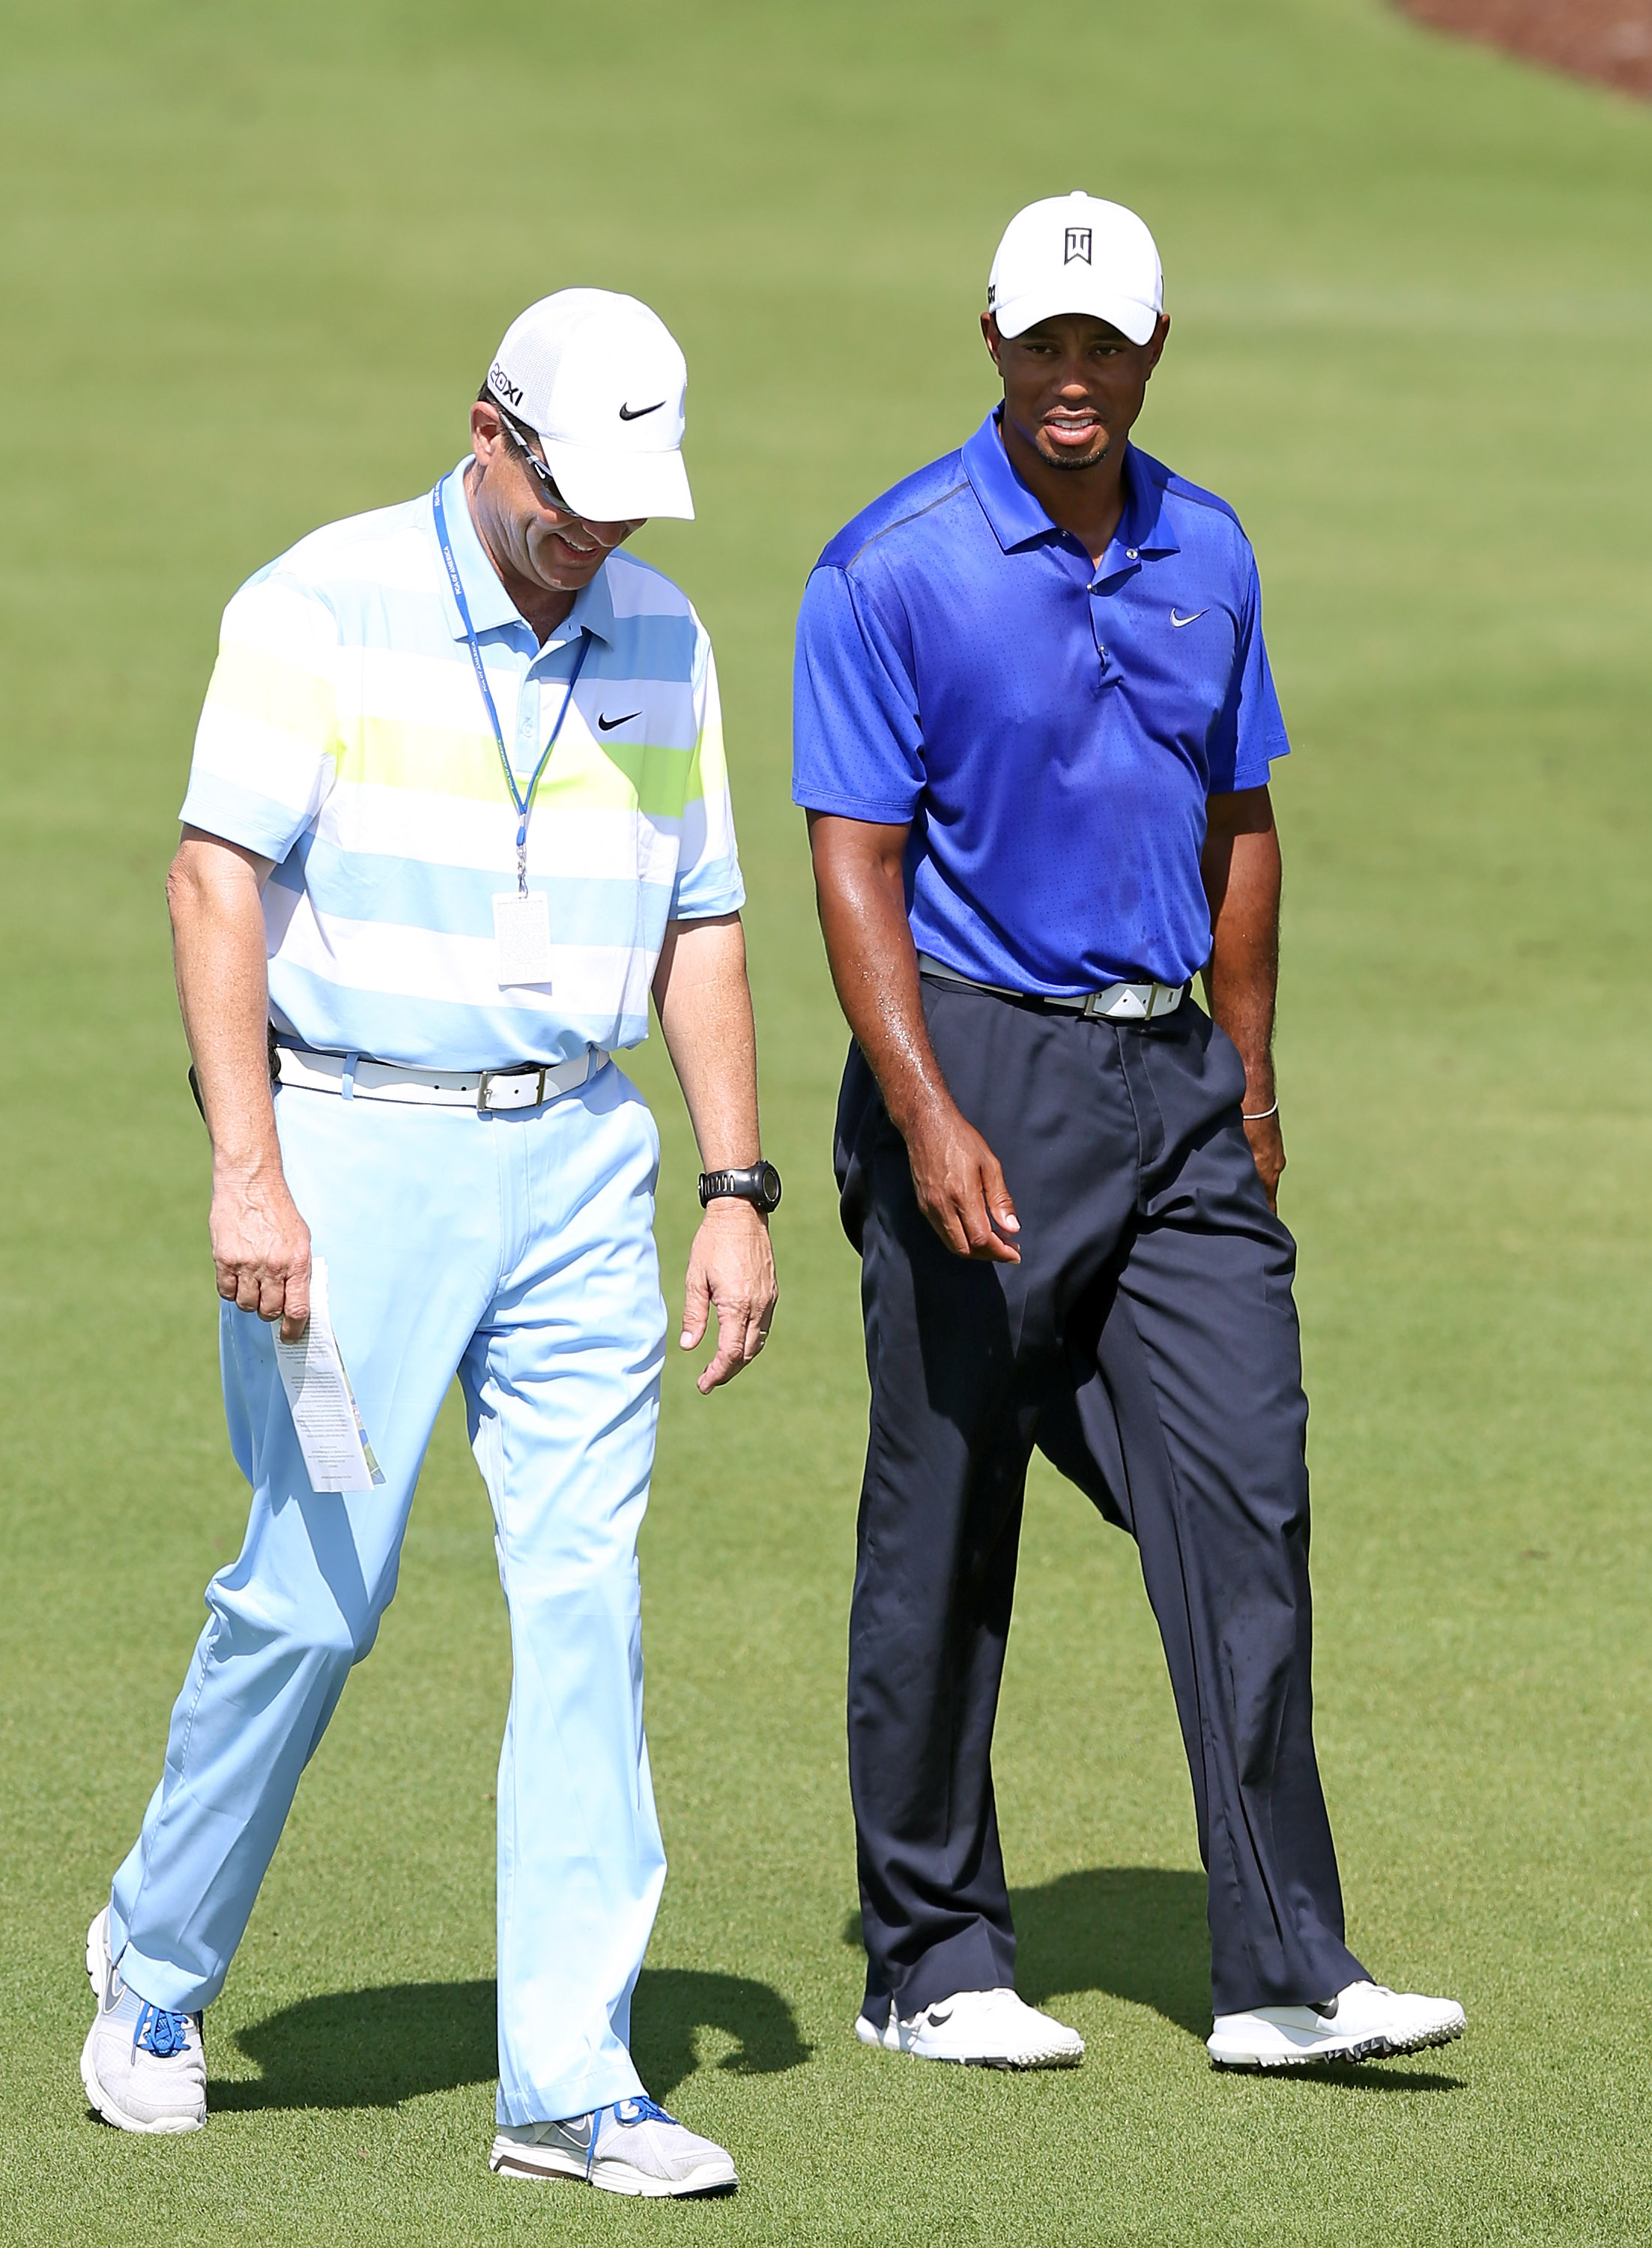 Tiger Woods leads the PGA Tour in scoring average but has struggled on the tougher courses. (Getty Images)